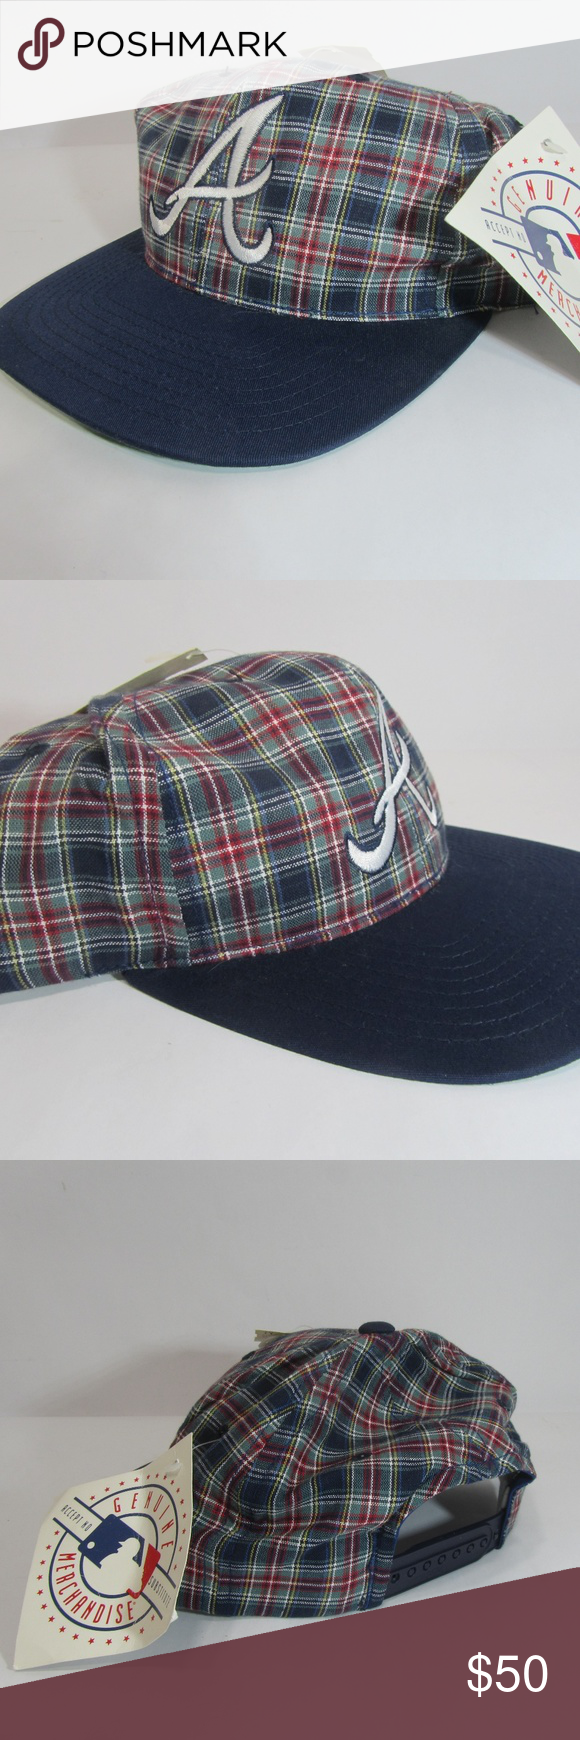 New Vtg Hat Snapback Annco Plaid Atlanta Braves Nwt Hat Fashion Trendy Hat Outfits With Hats